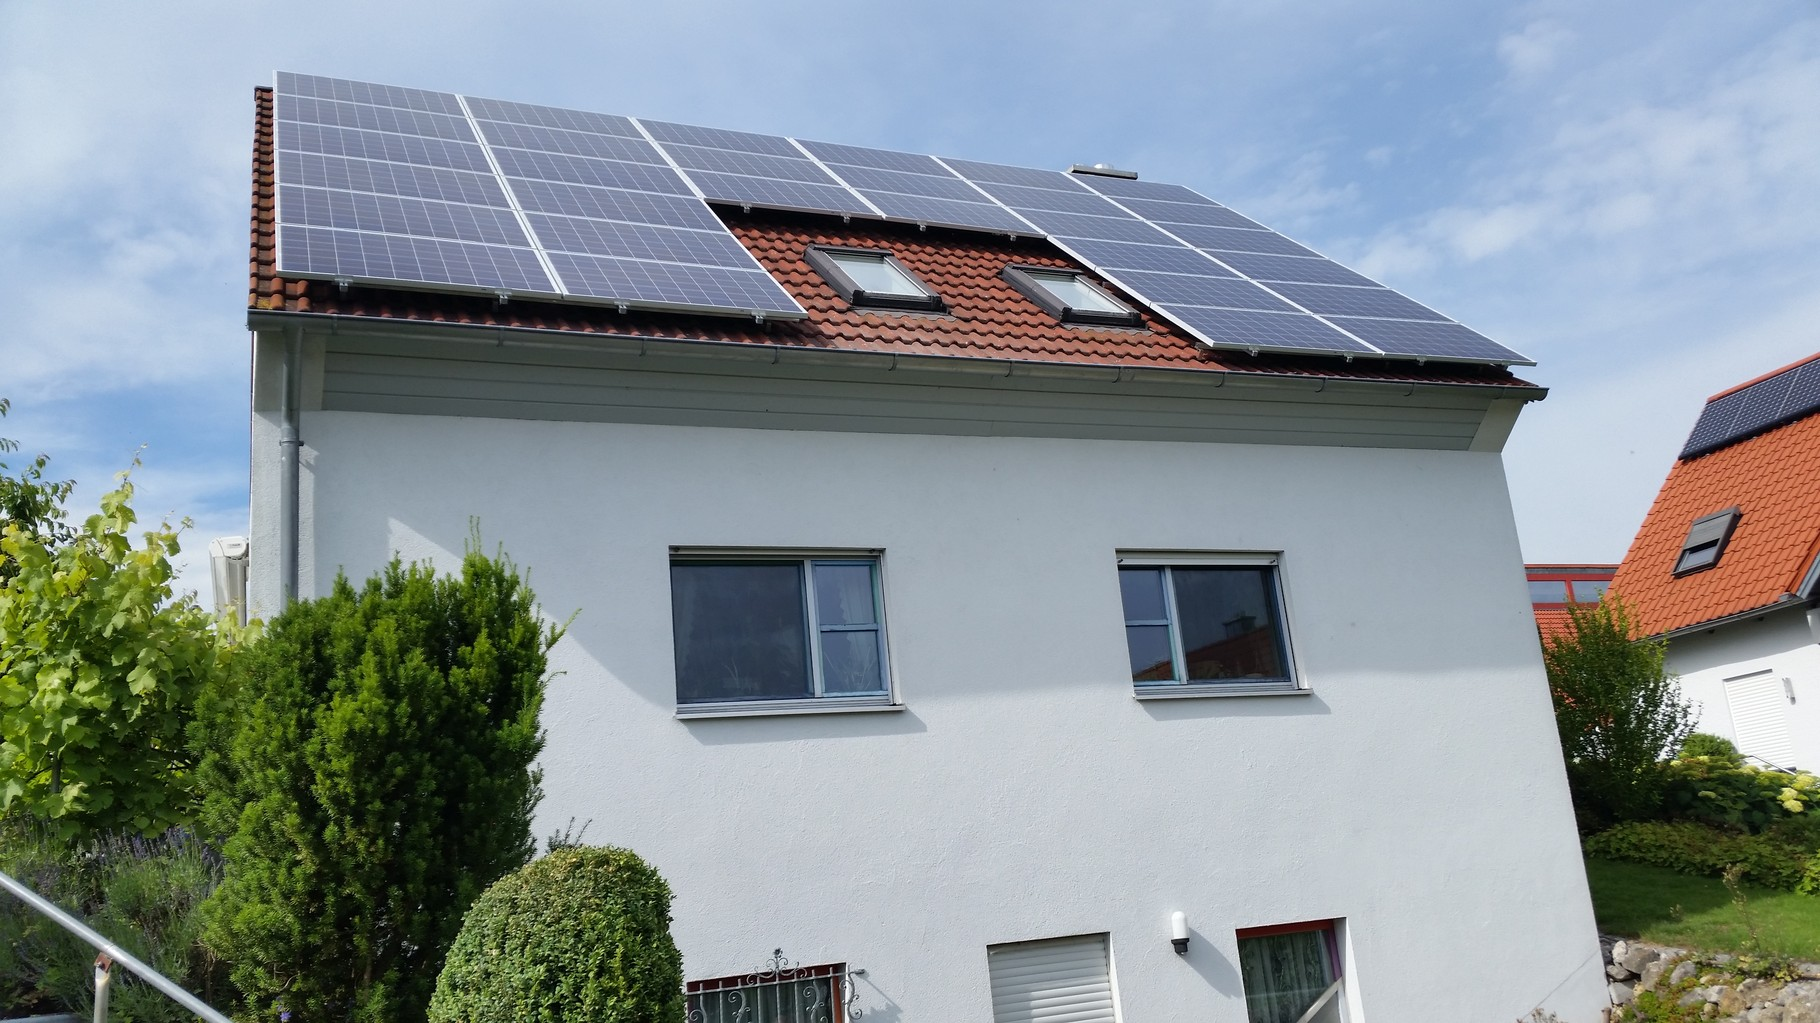 7,5 kWp Photovoltaikanlage 93077 Bad Abbach SHARP Modulen